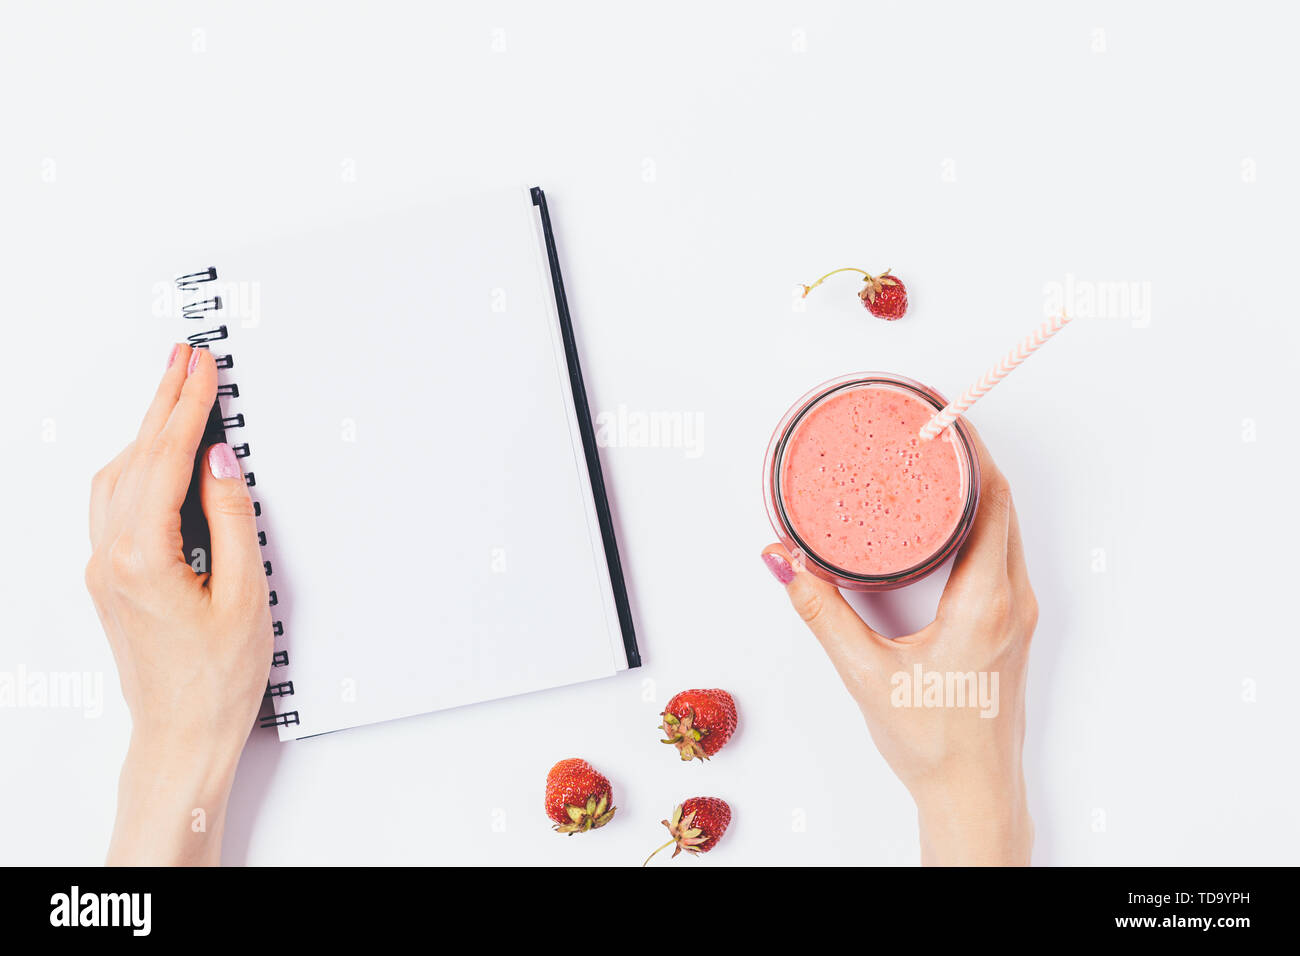 Woman's hands holding an empty notepad and glass of strawberry smoothie next to berries on white table, top view. - Stock Image